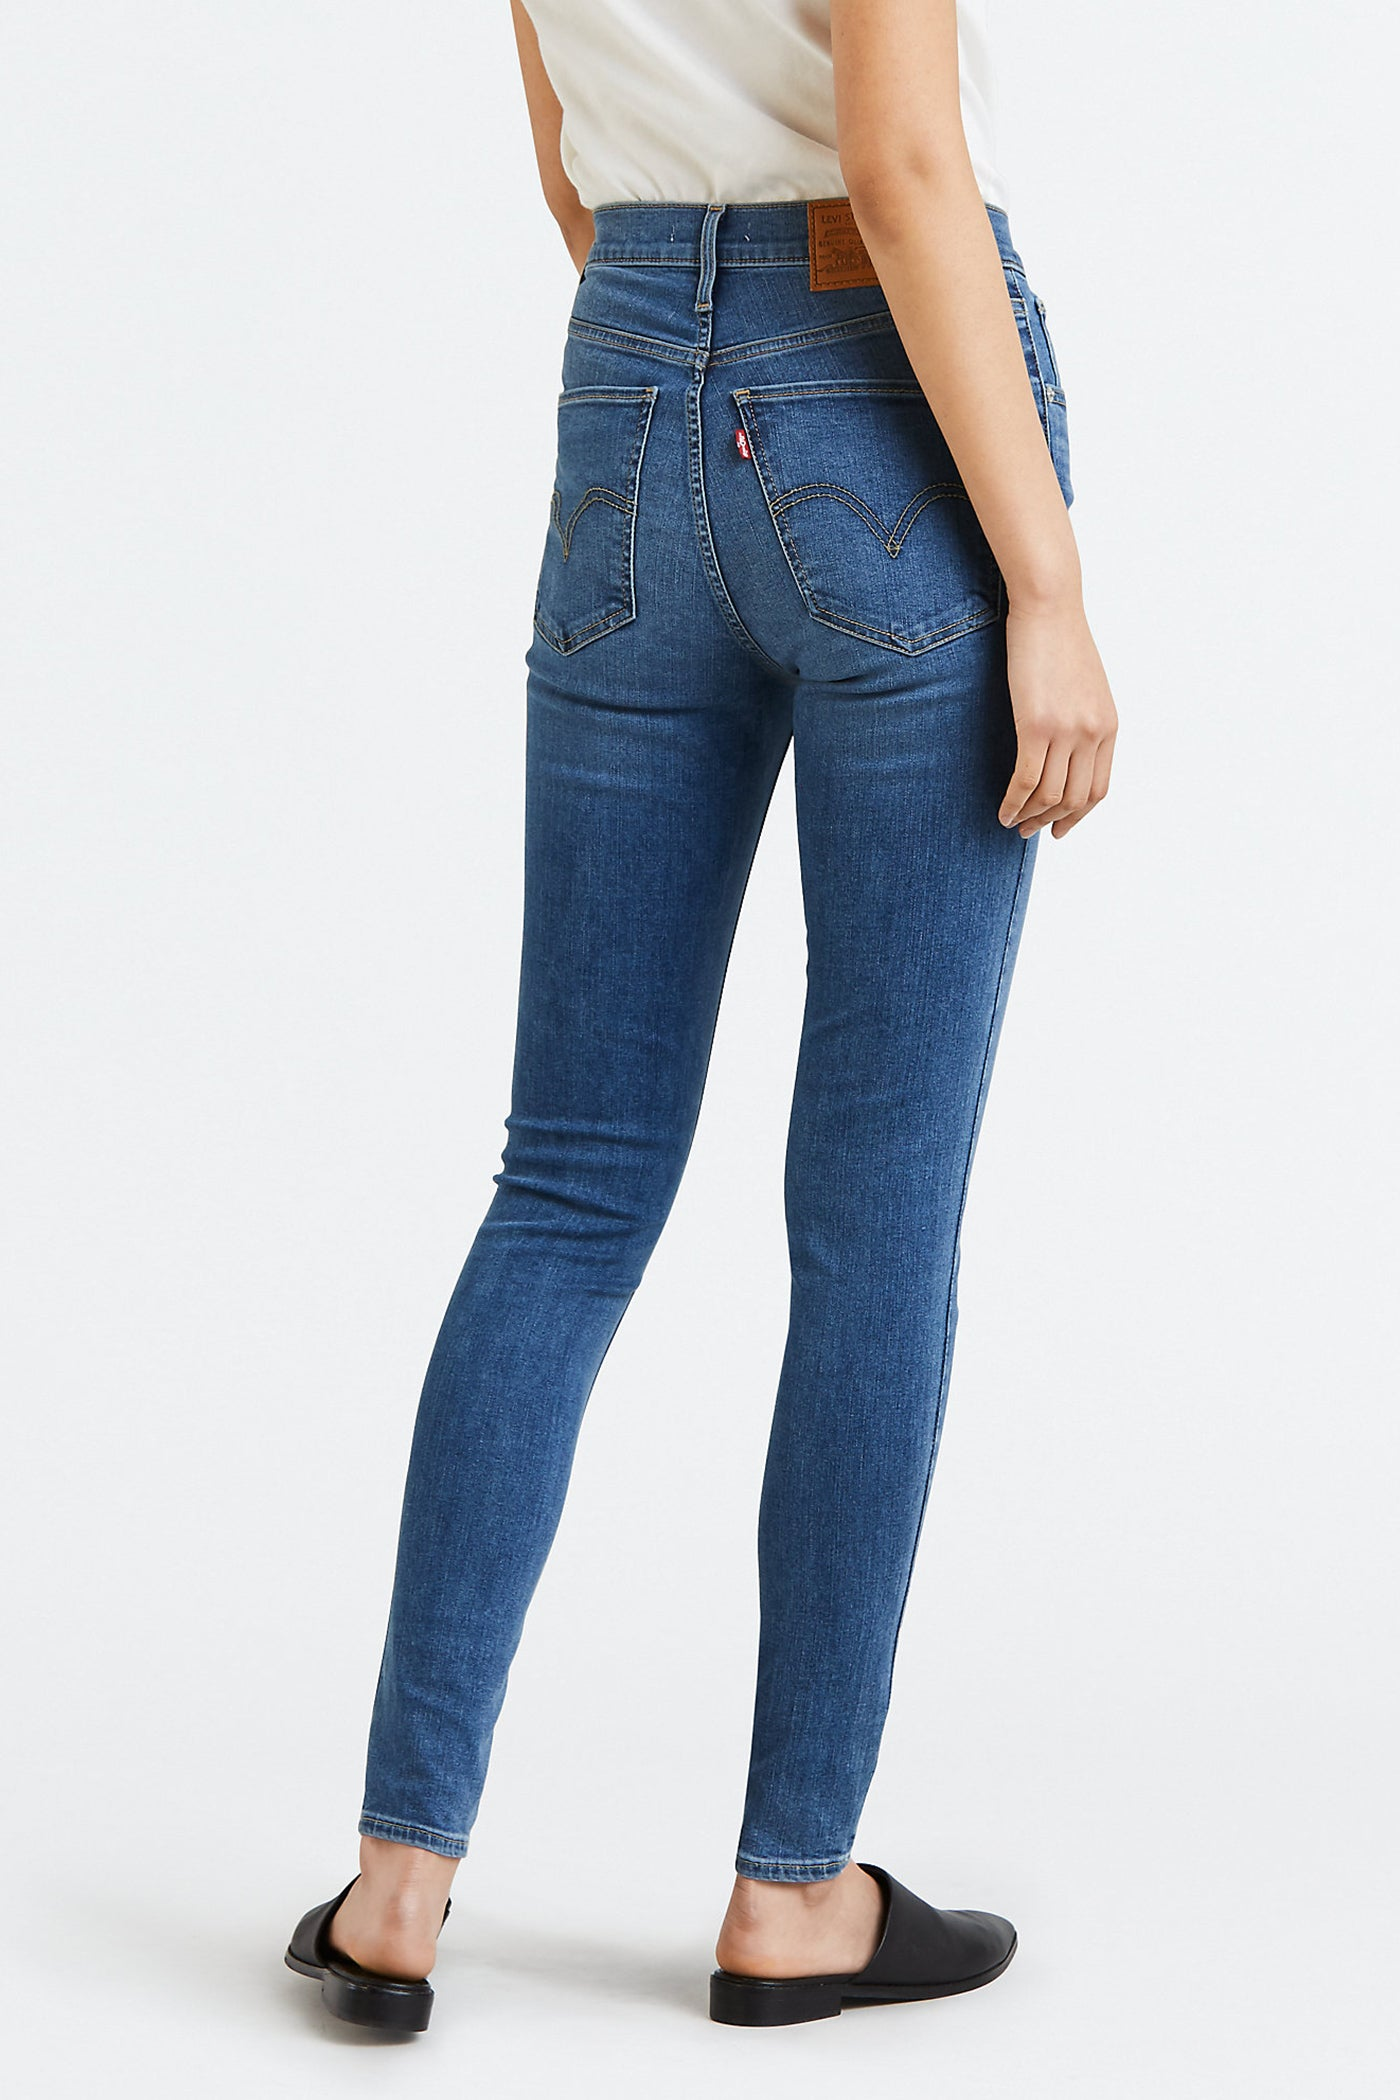 Mile High Super Skinny Jeans by Levi's